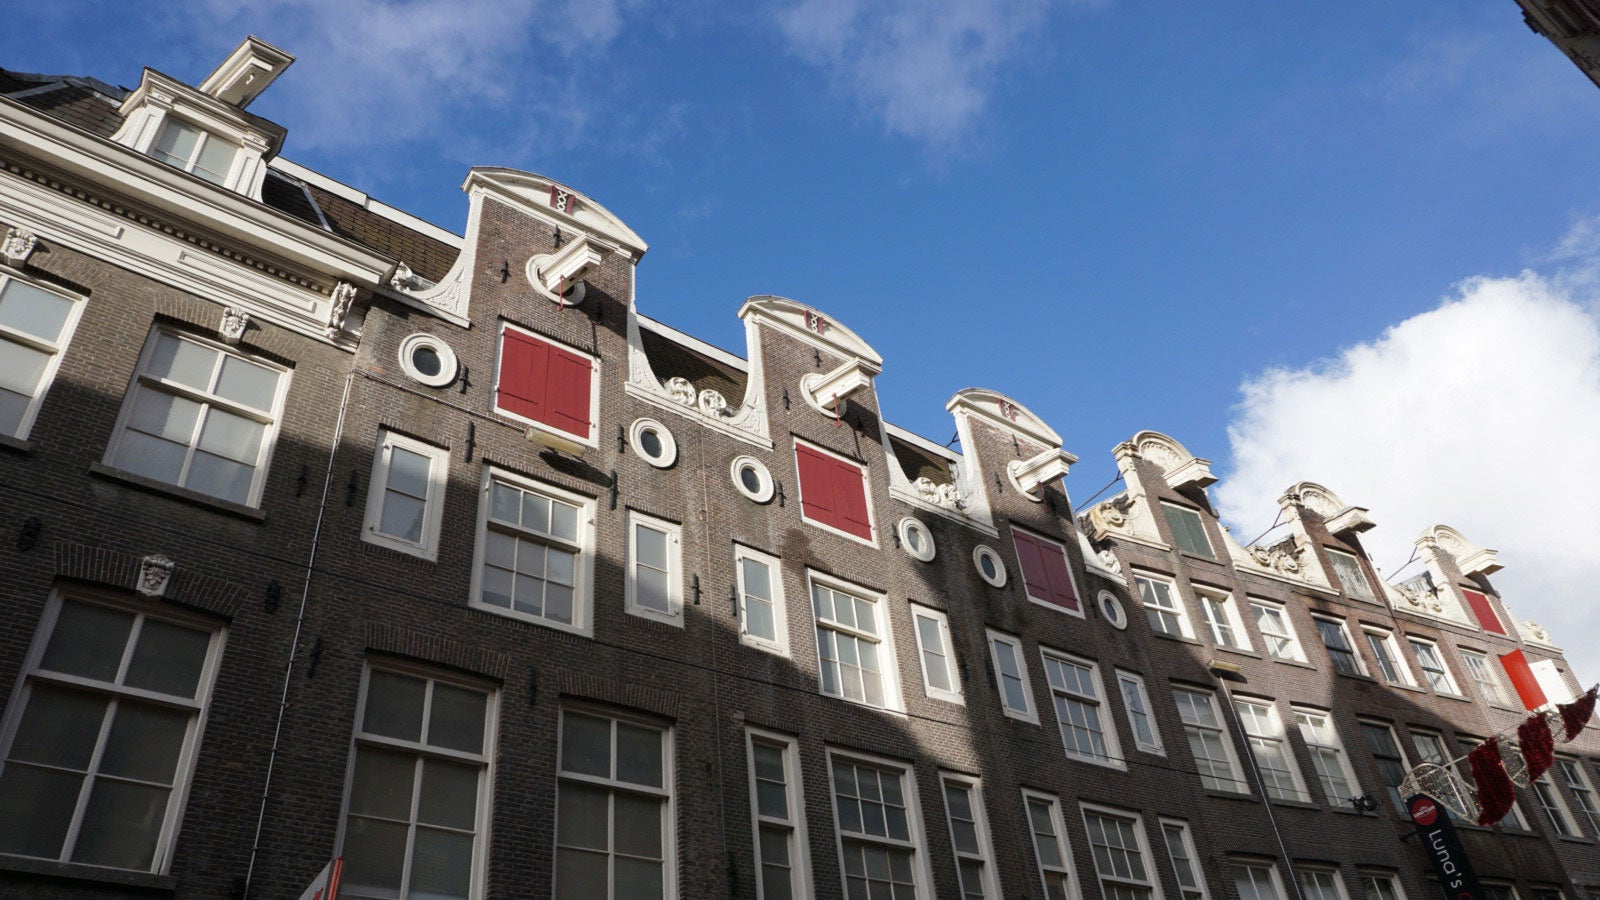 The tall houses above the shops of Kalverstraat with a blue sky above